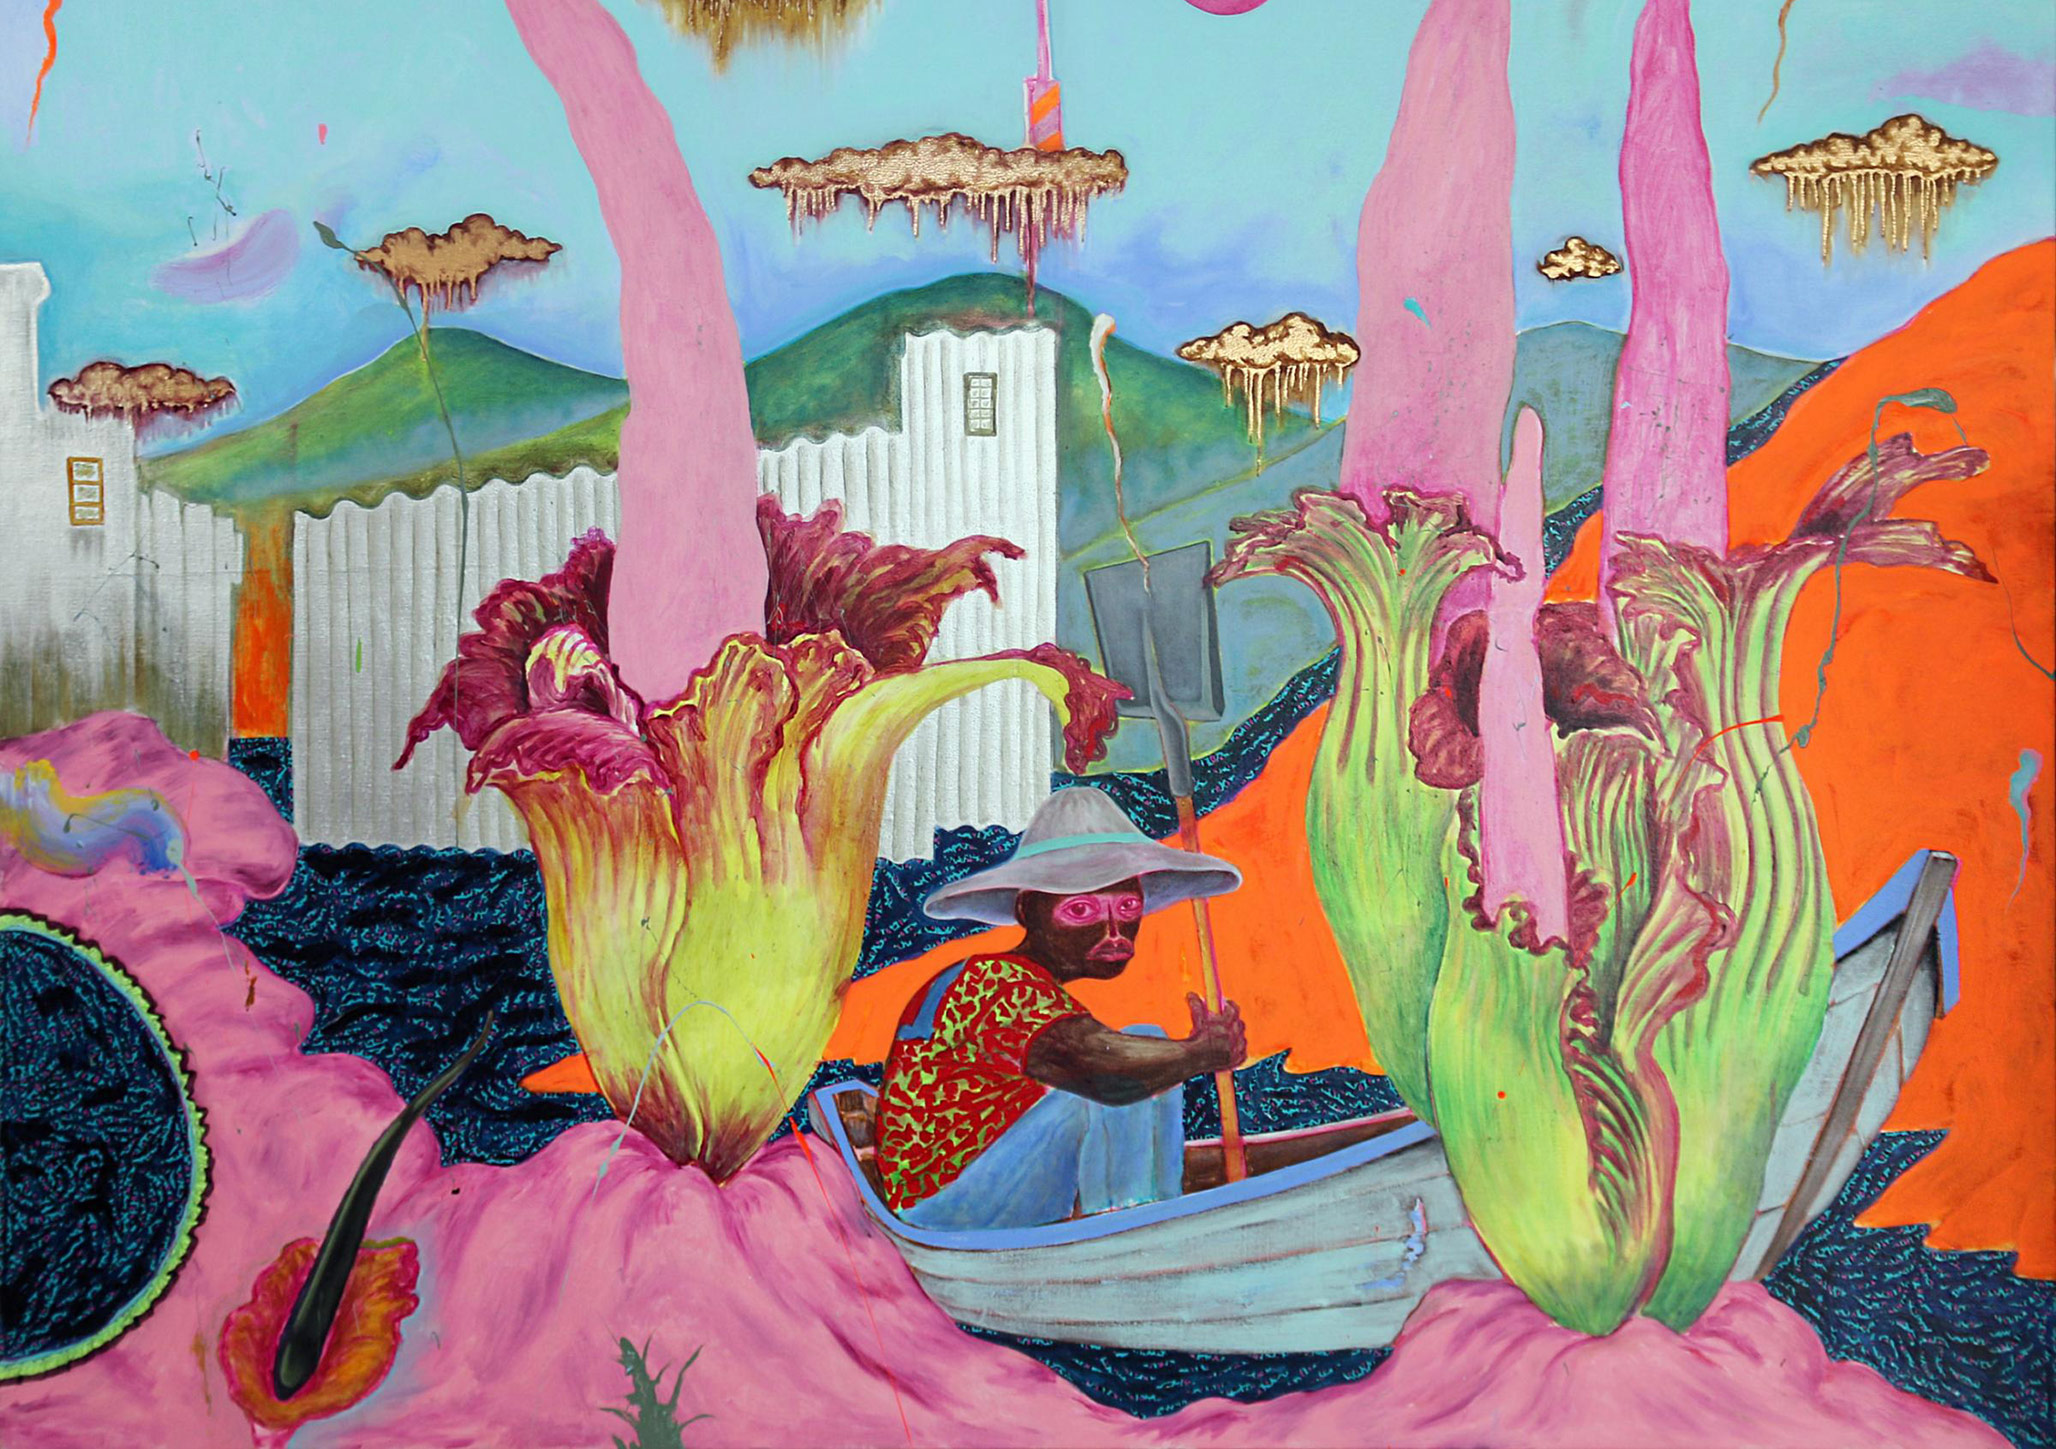 A detail from a painting by Simphiwe Ndzube, titled The Bloom of the Corpse Flower, dated 2020.